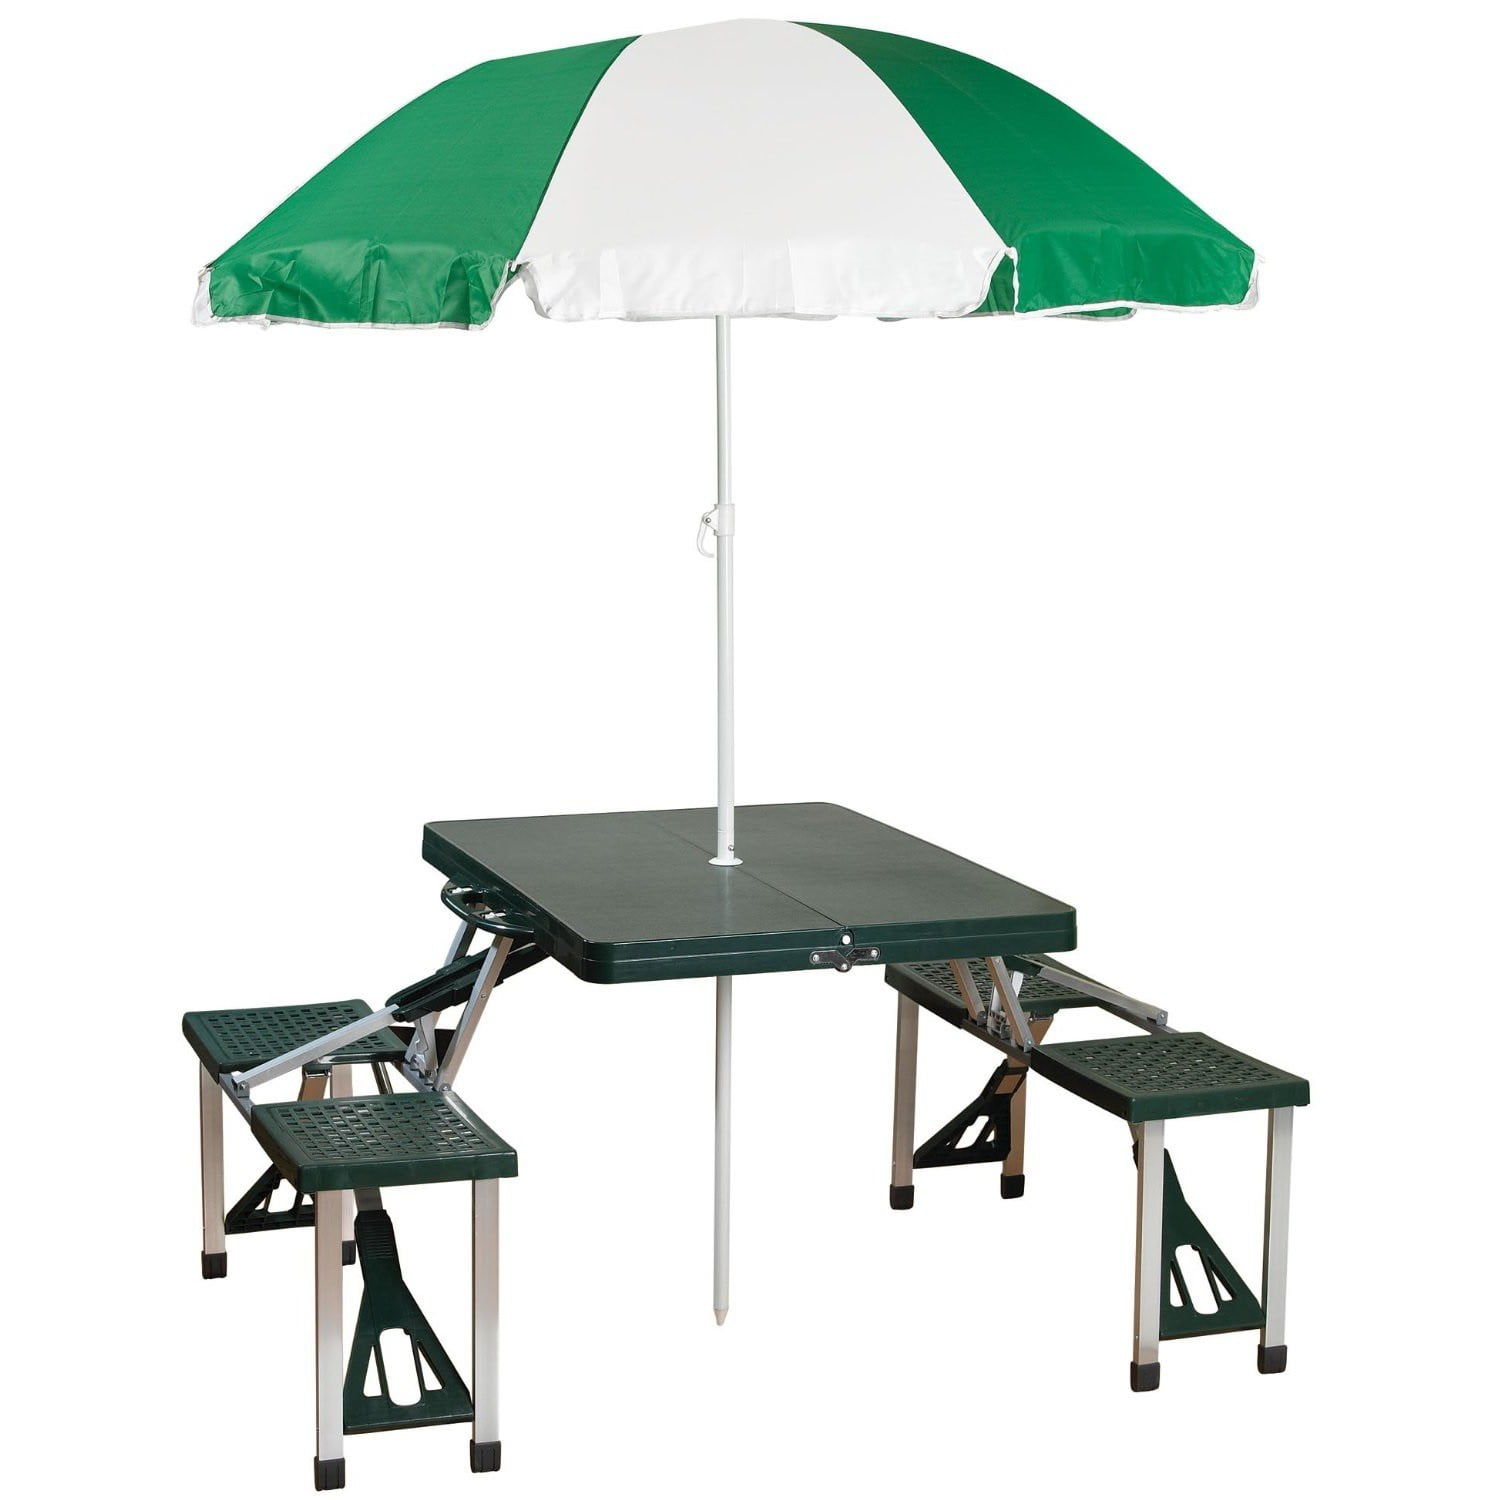 Portable Picnic Table   Walmart.com